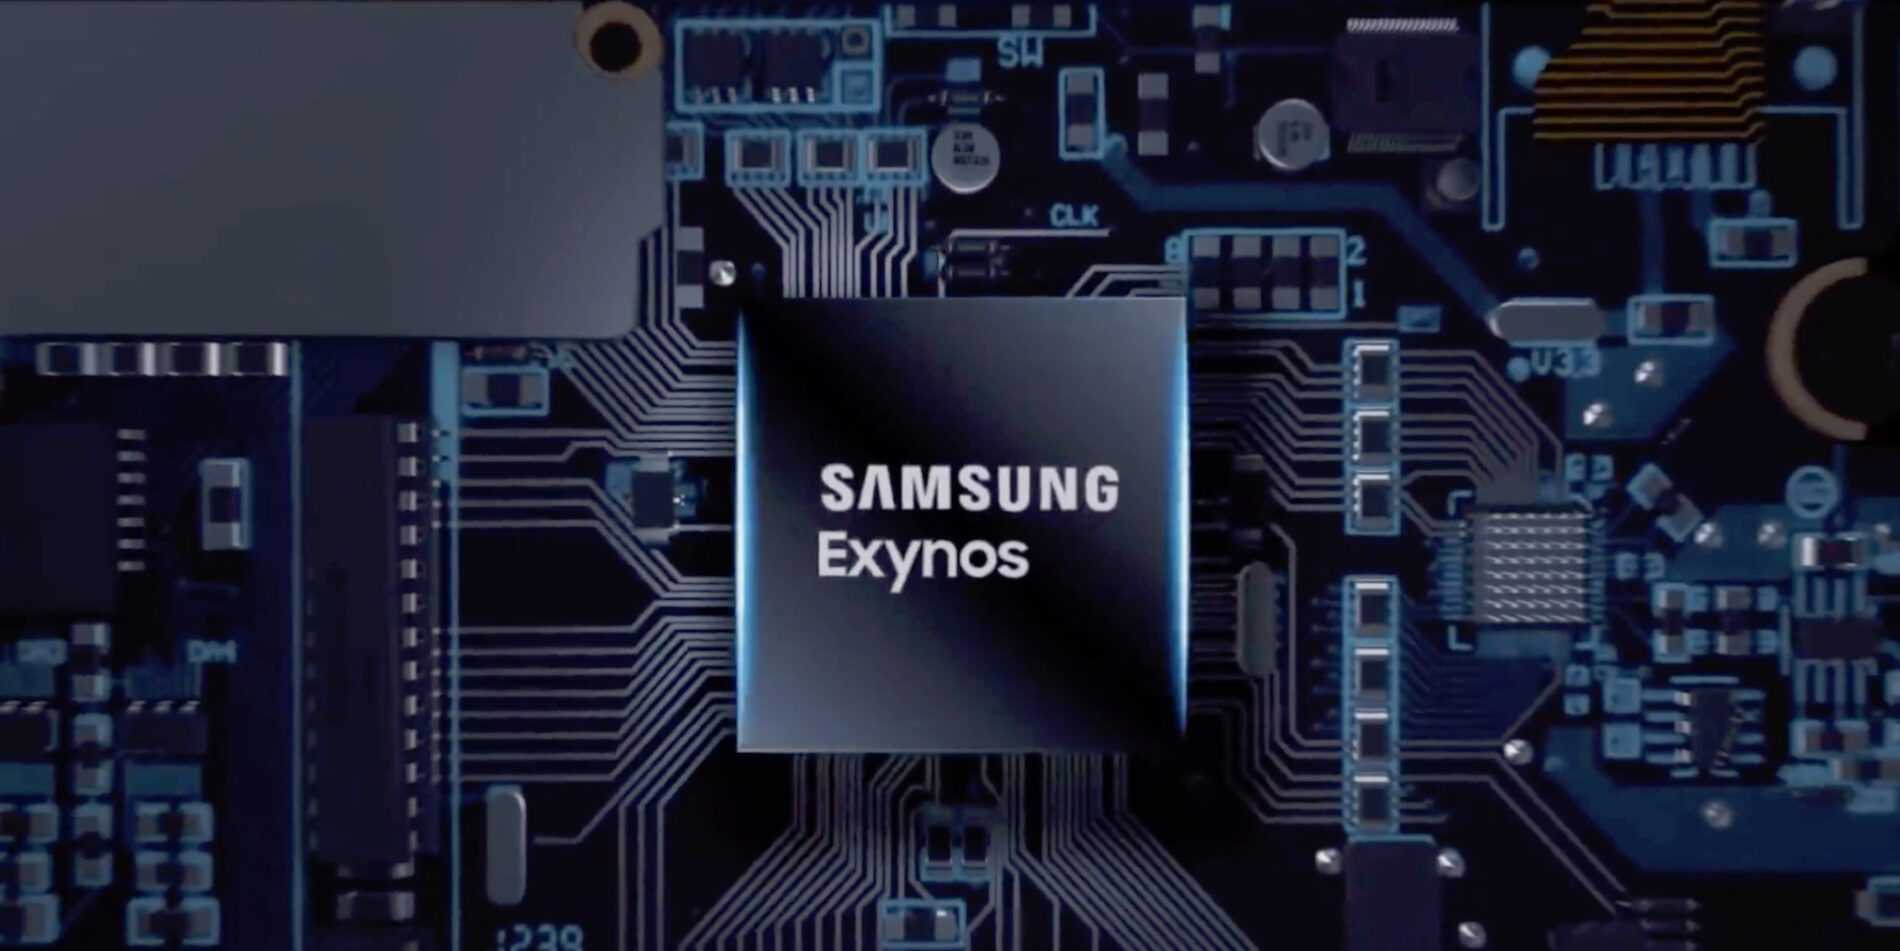 Samsung Exynos 2200, le premier processeur pour Windows 10 ARM